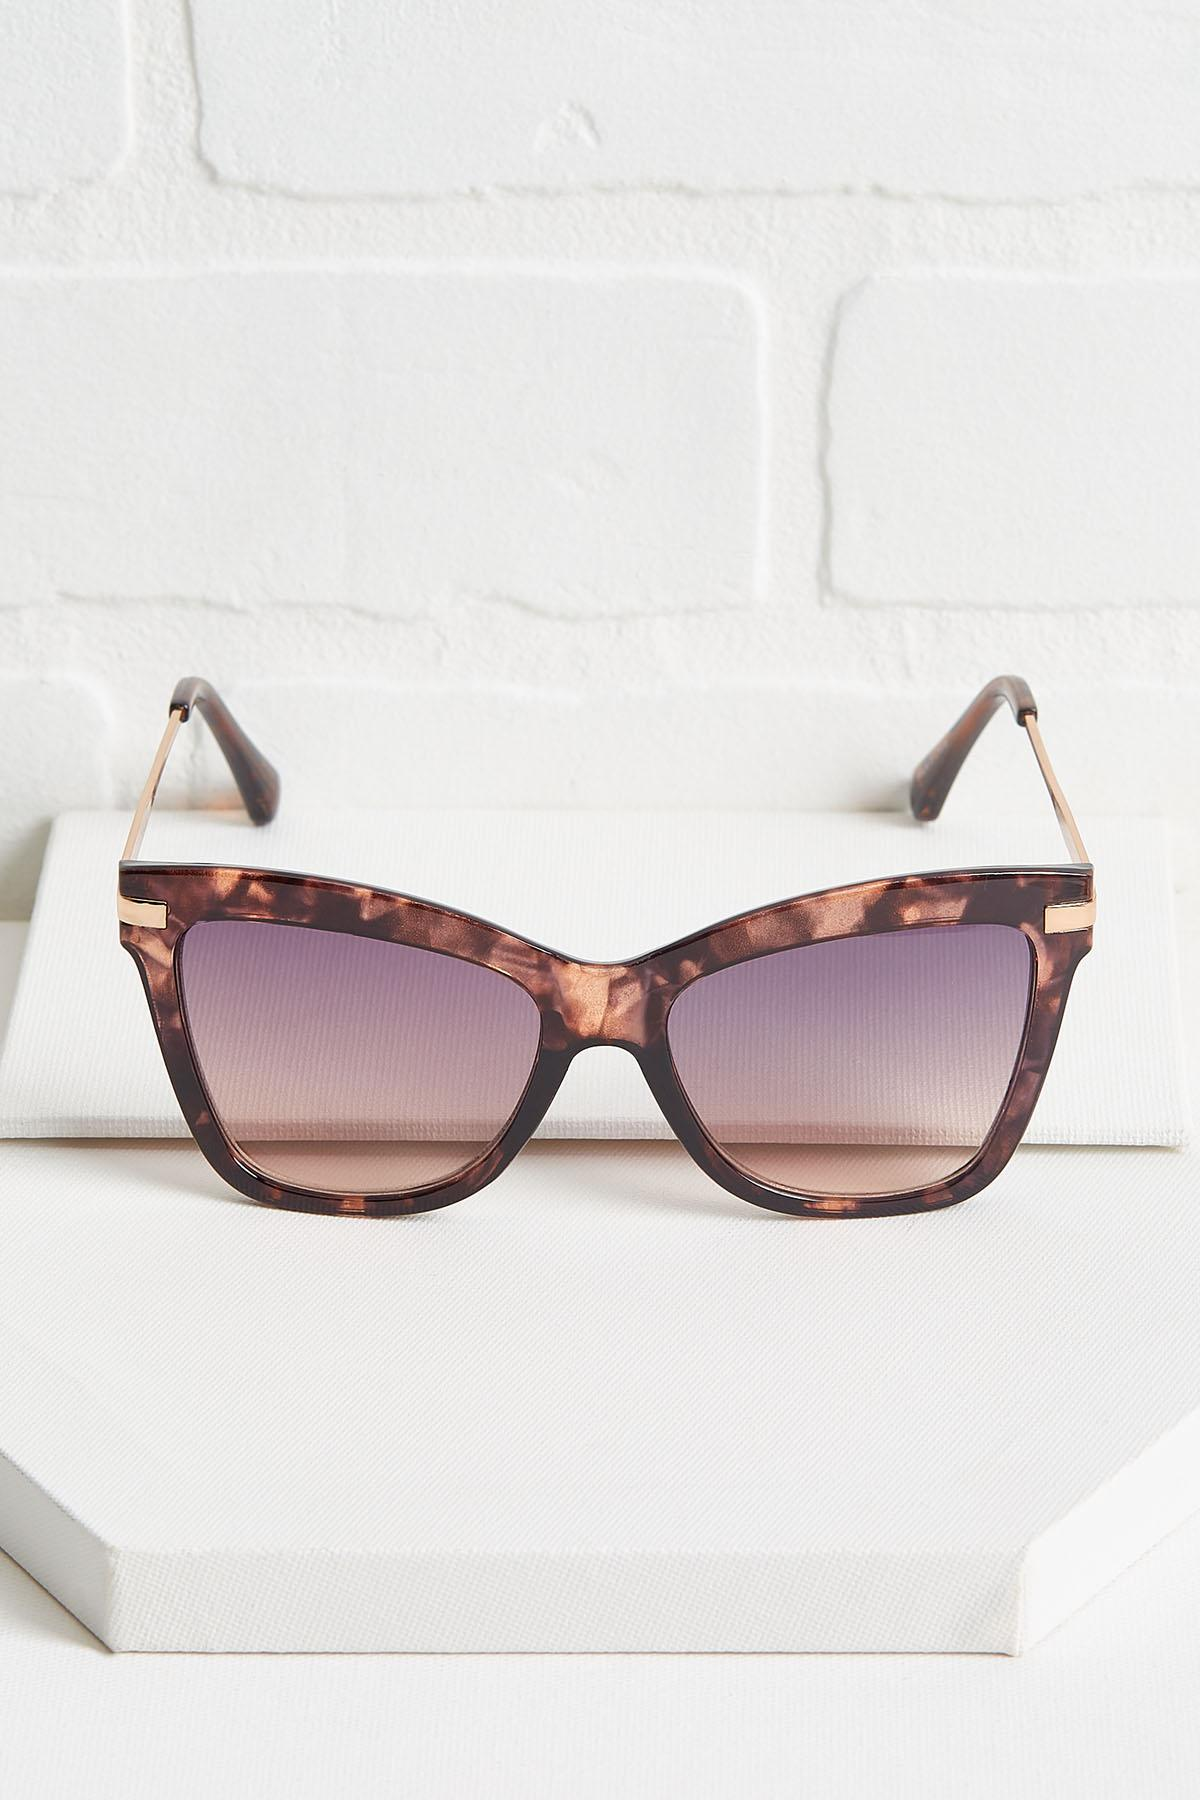 Only Have Cat Eyes For You Sunglasses